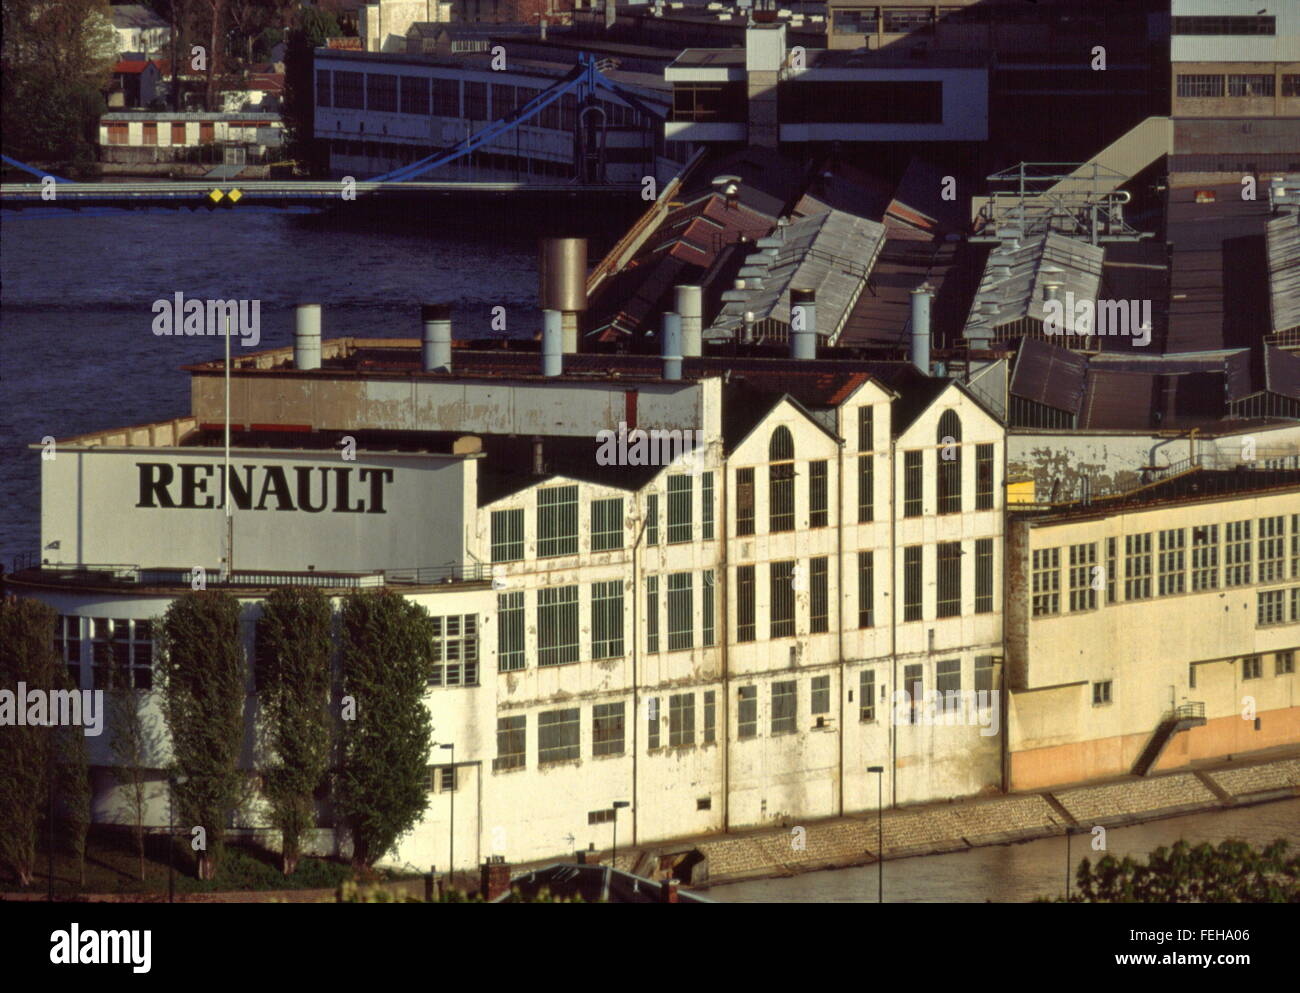 ajaxnetphoto 1990 paris france renault ile seguin stock photo 95038054 alamy. Black Bedroom Furniture Sets. Home Design Ideas